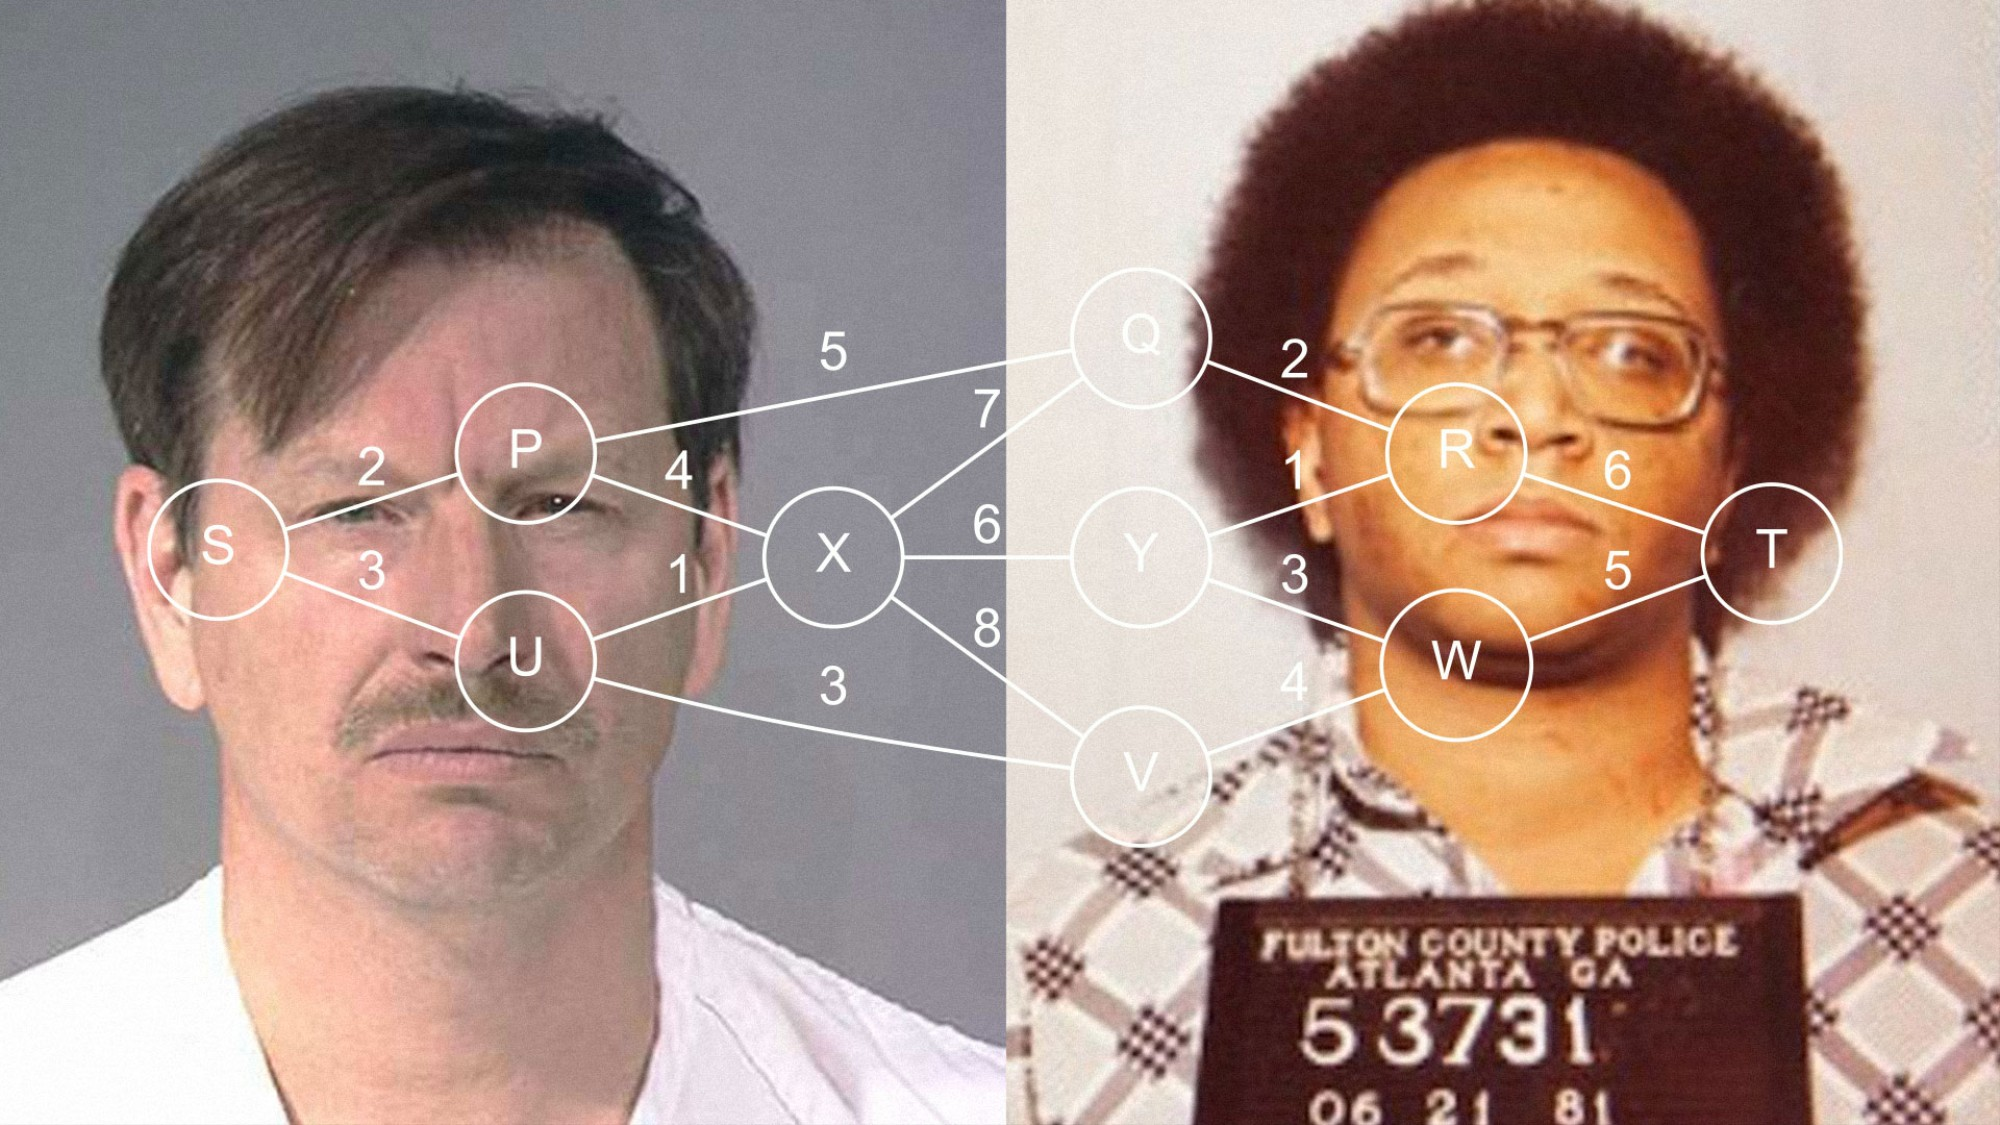 This Algorithm Helps Find Serial Killers But Australia Won't Use it